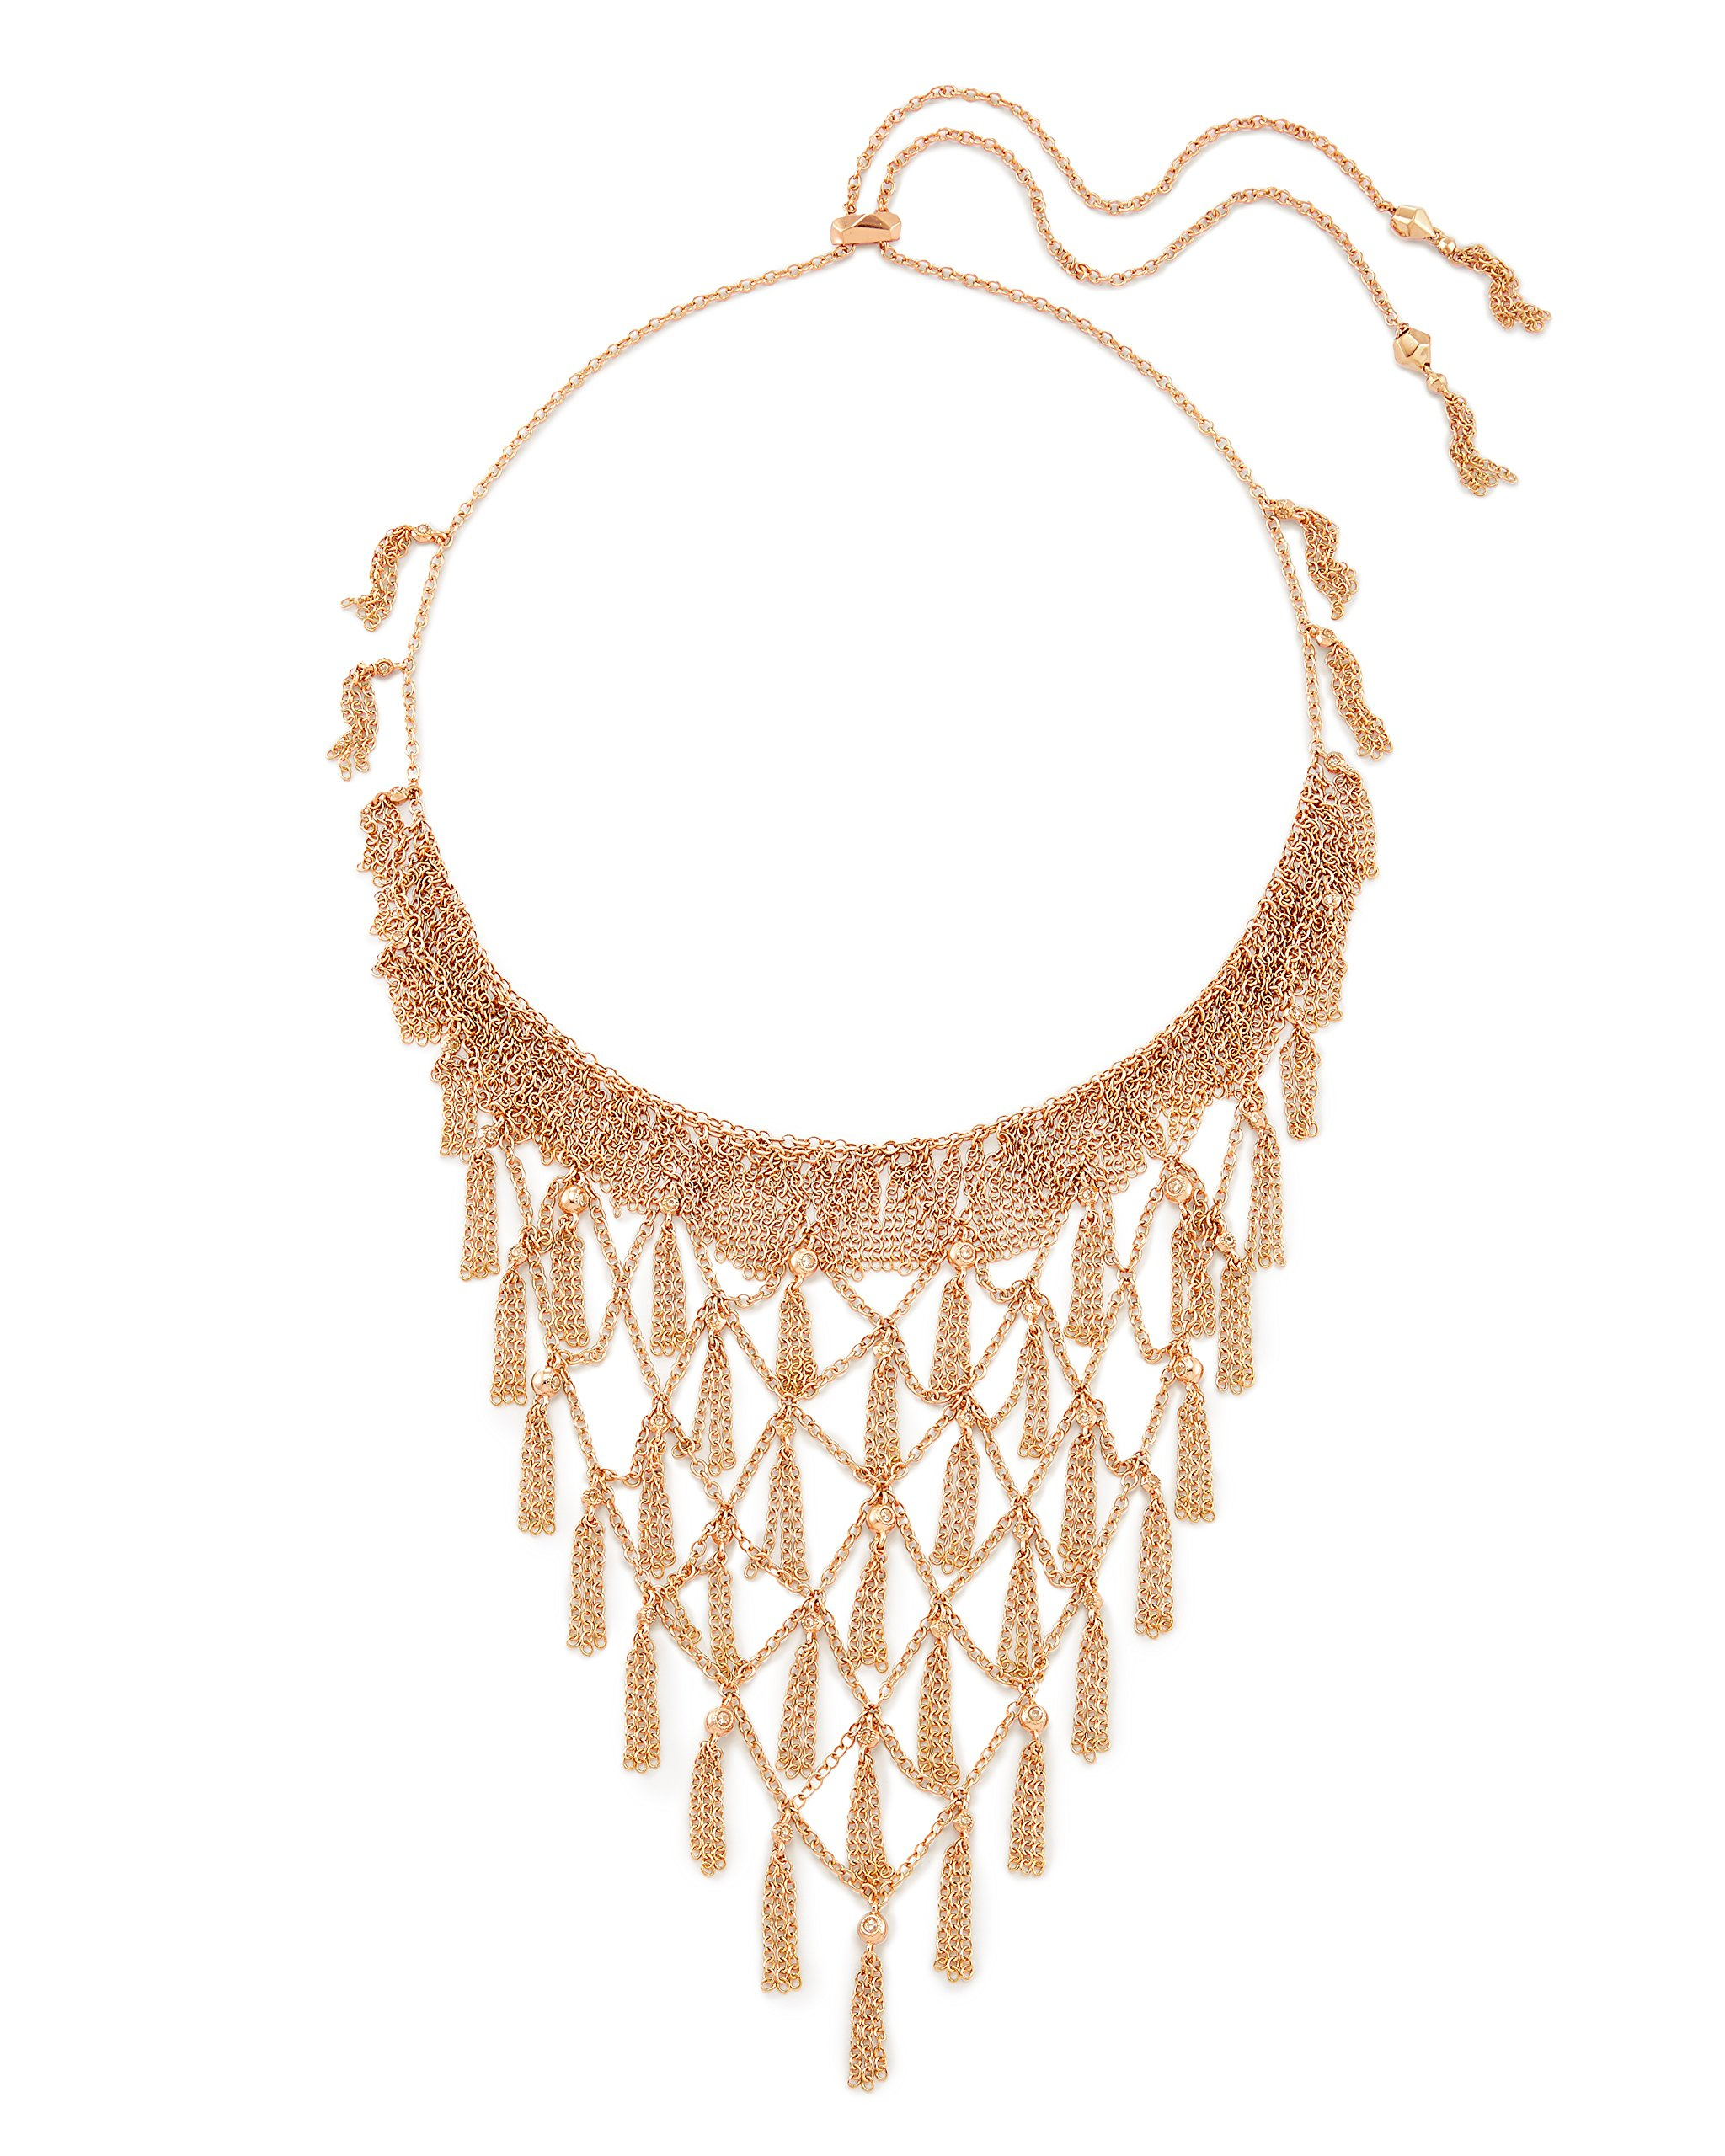 Kendra Scott Georgina Necklace in Rose Gold Plated and Cubic Zirconia by Kendra Scott